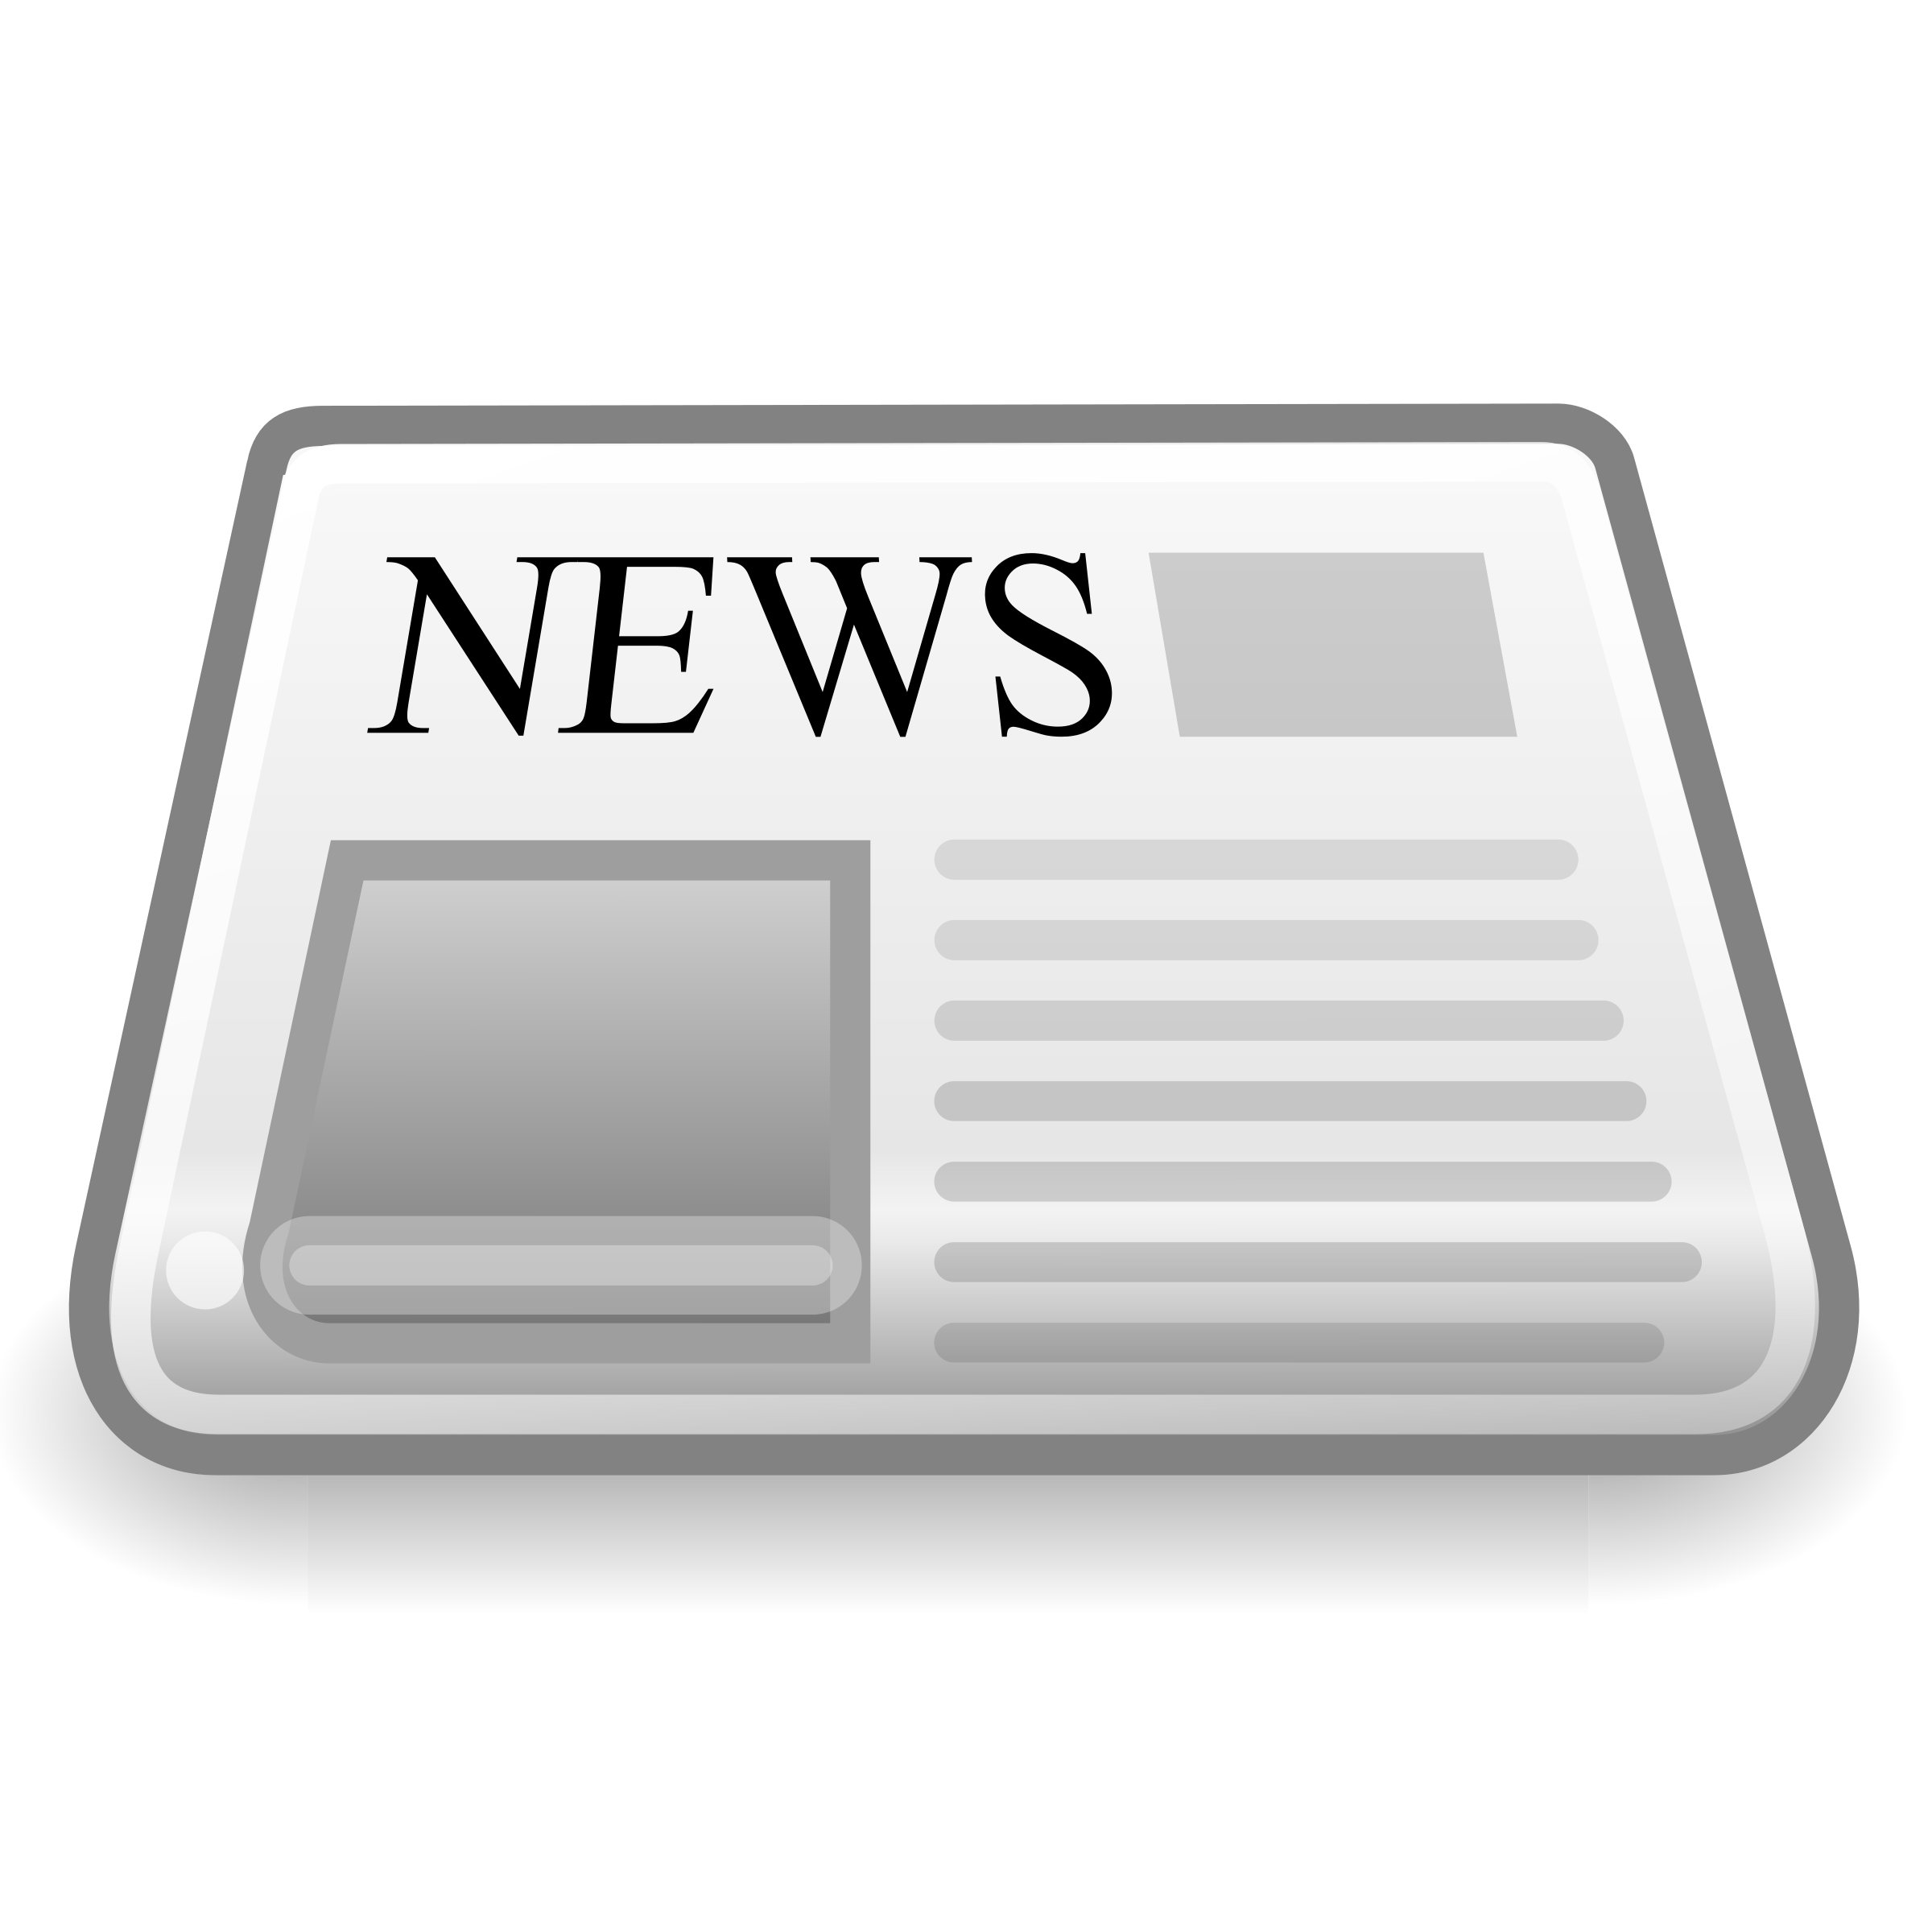 Icon big image png. News clipart news paper